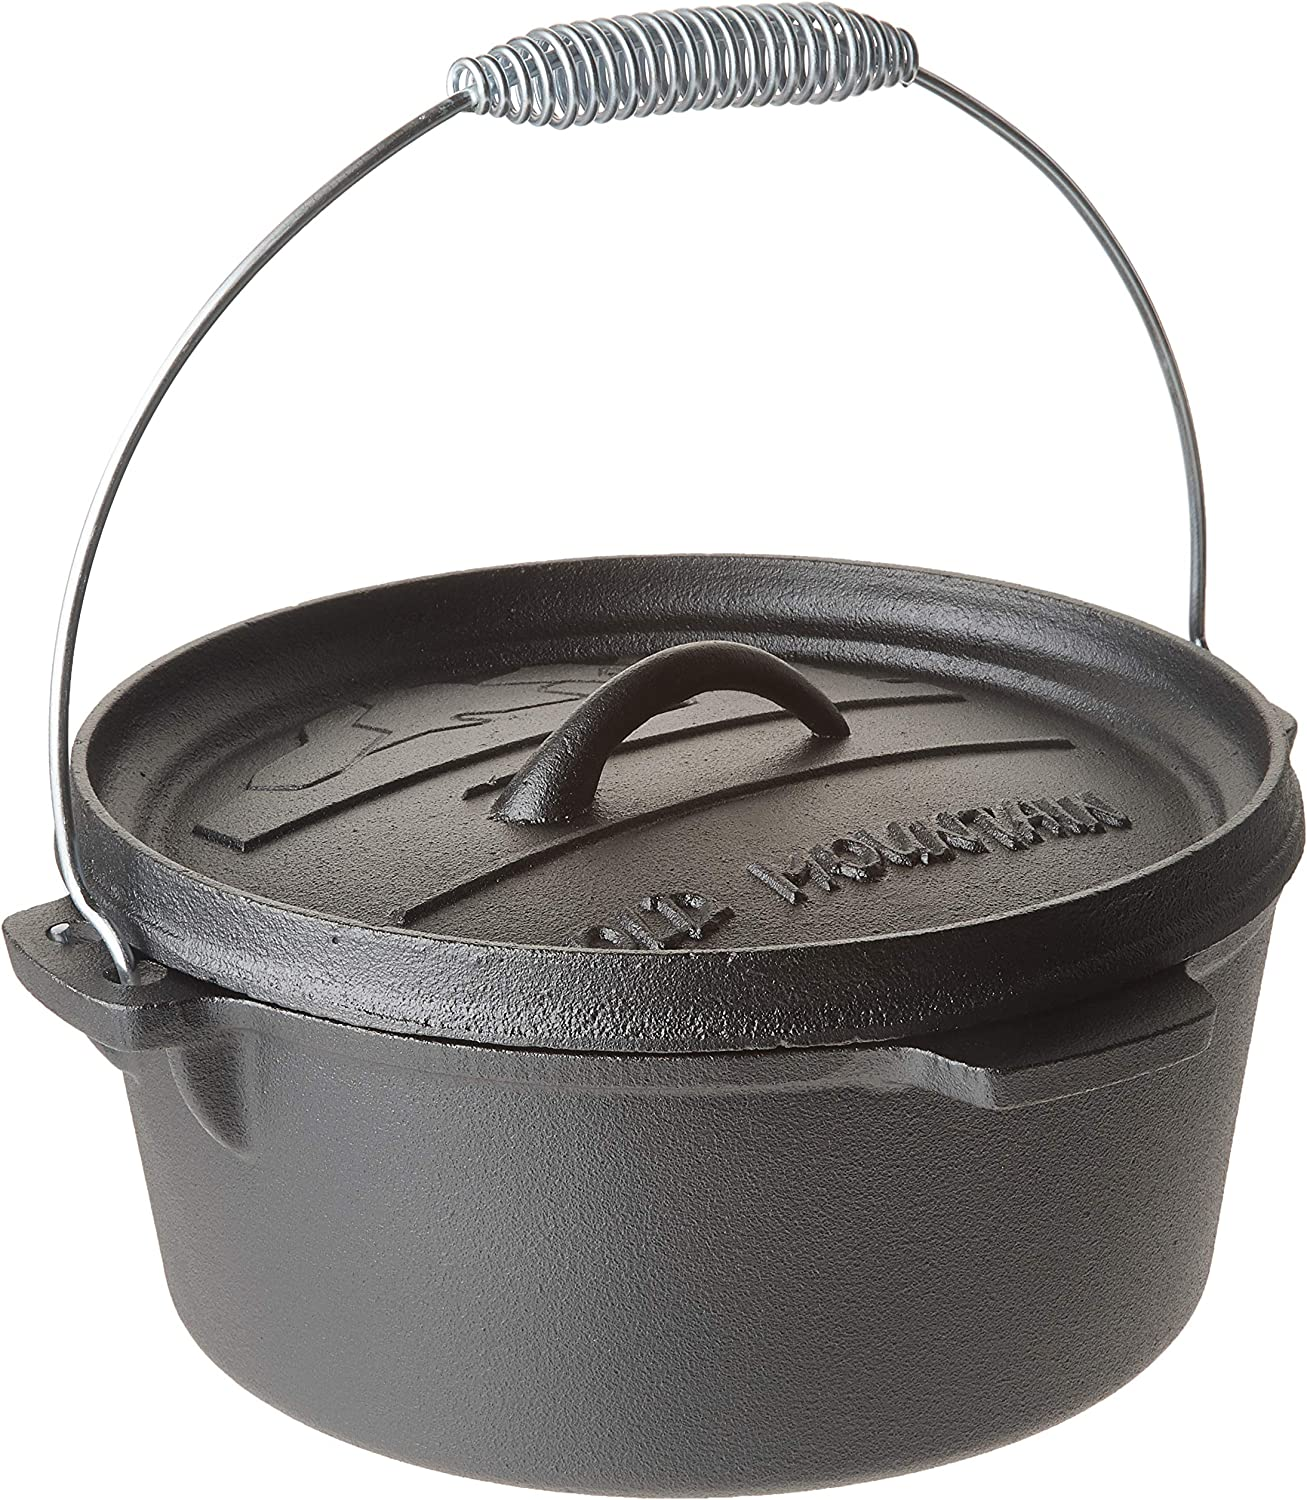 Old Mountain 10176 Pre Seasoned 4-Quart Dutch Oven with Flanged Lid, No Feet